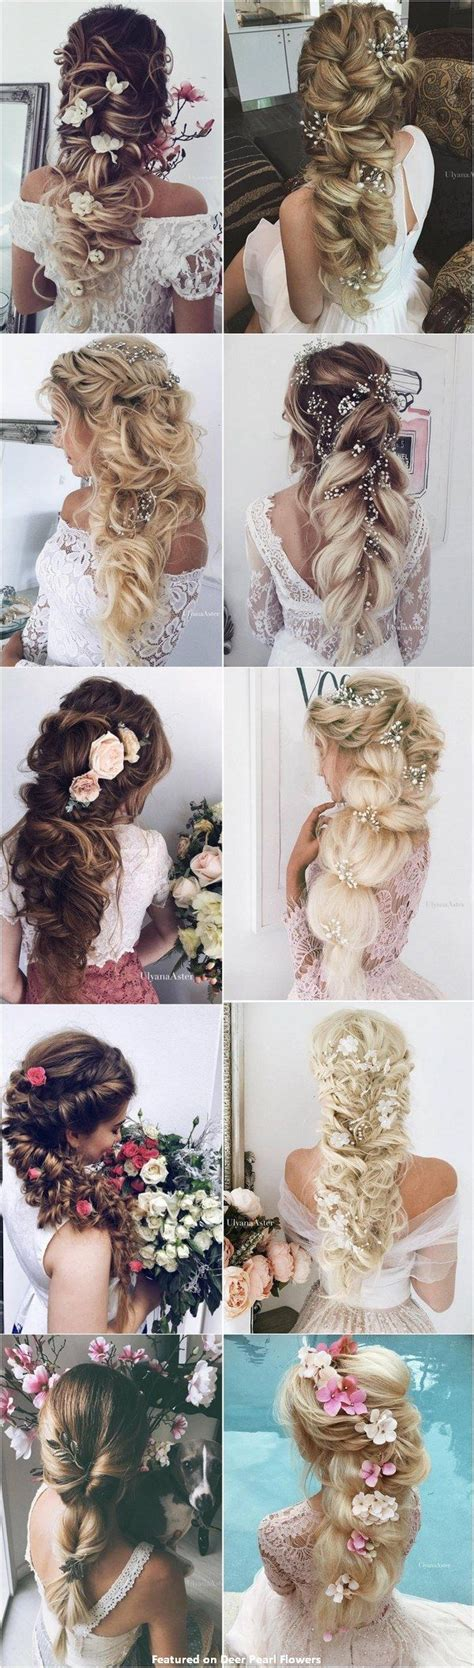 hear style 25 best ideas about hear style on pinterest used